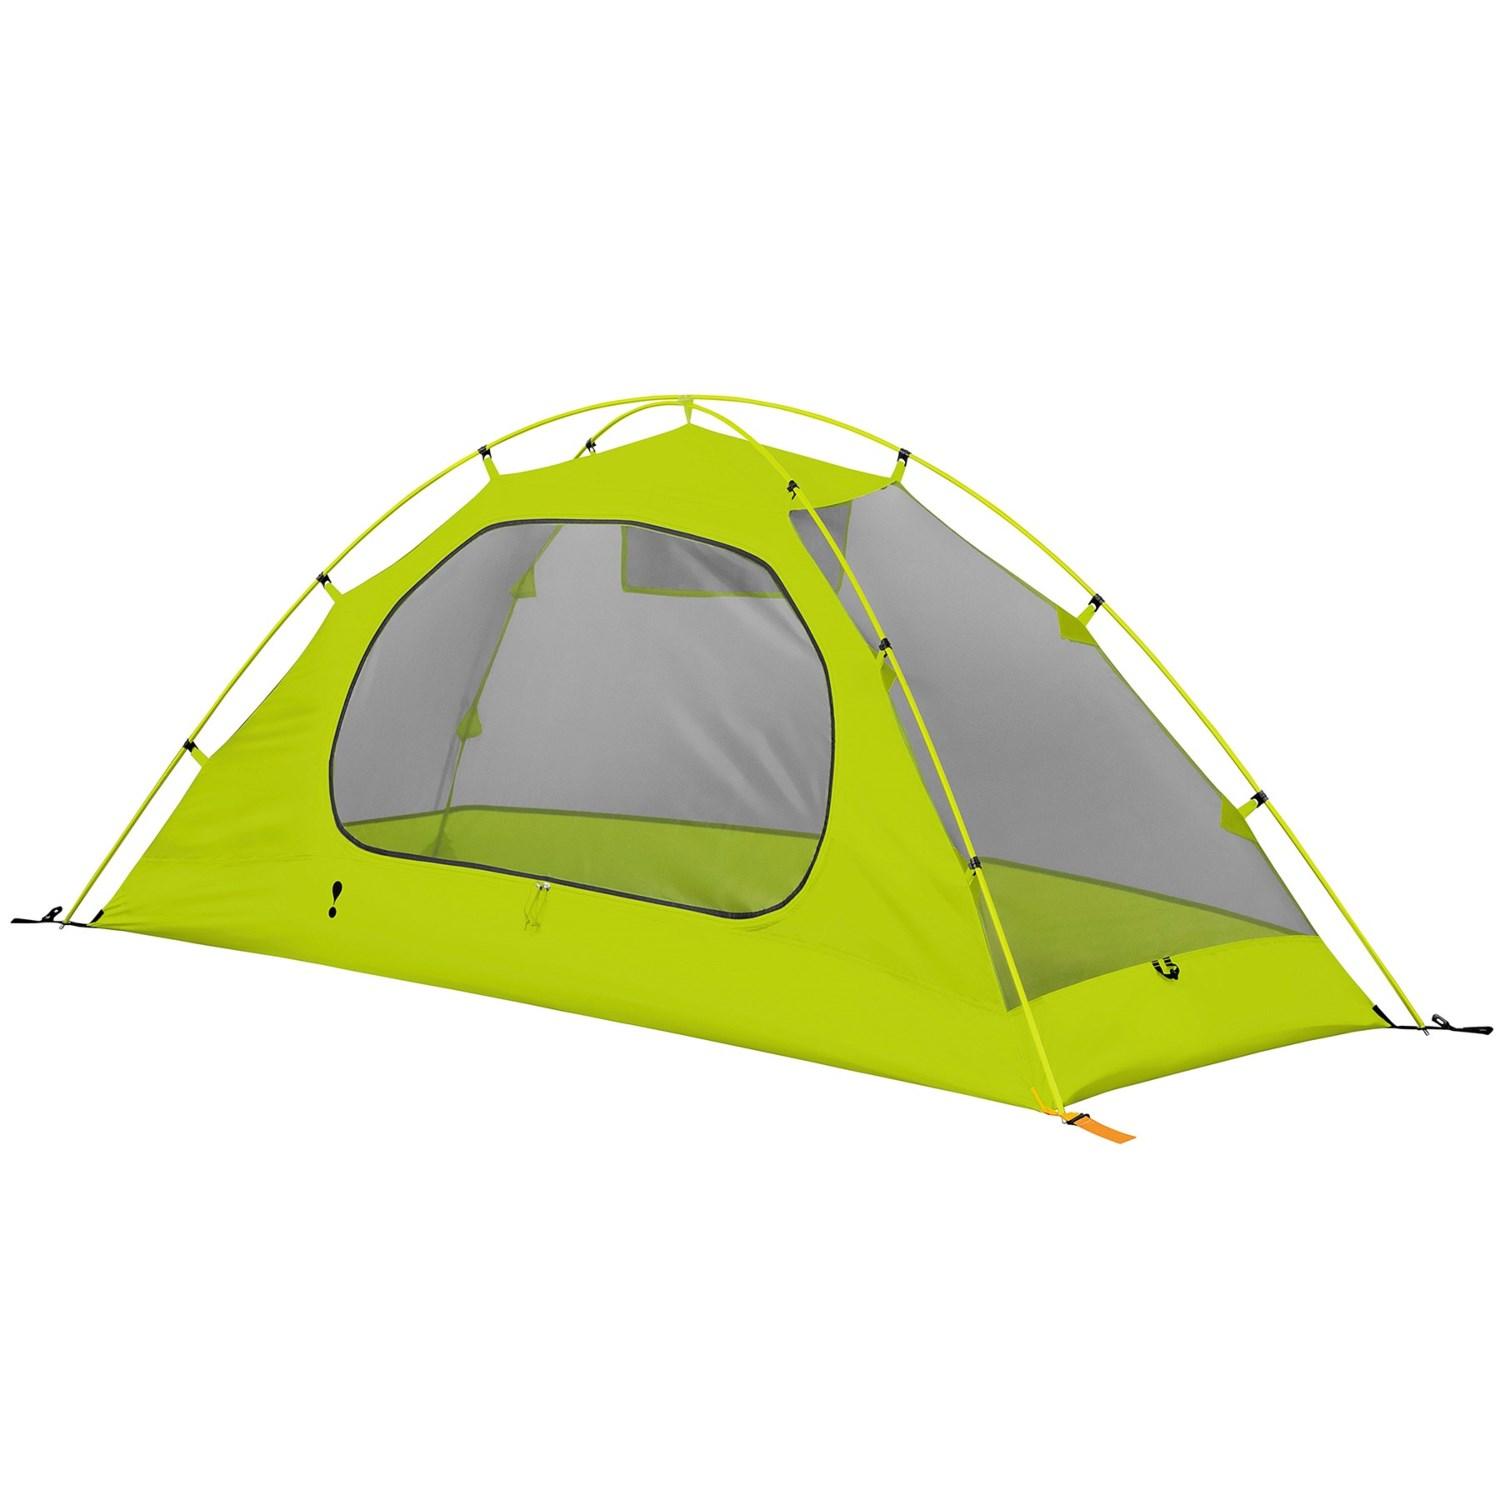 Eureka Midori 6 Tent - 6-Person 3-Season in See Photo ...  sc 1 st  Sierra Trading Post : eureka dining tent - memphite.com